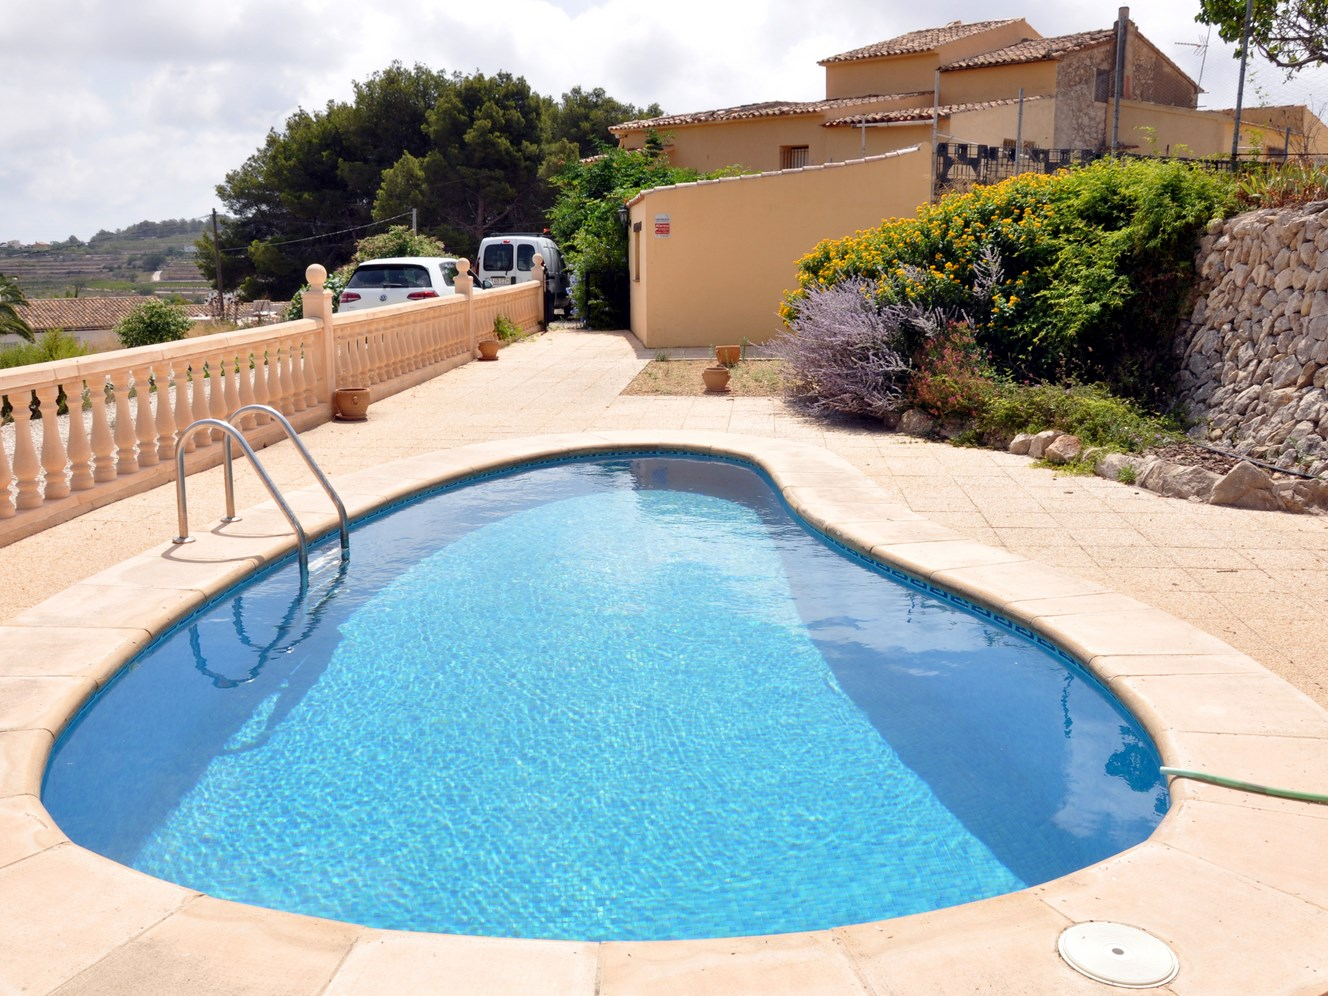 ATTACHED MODERNISED FINCA IN THE COUNTRYSIDE NEAR MORAIRA